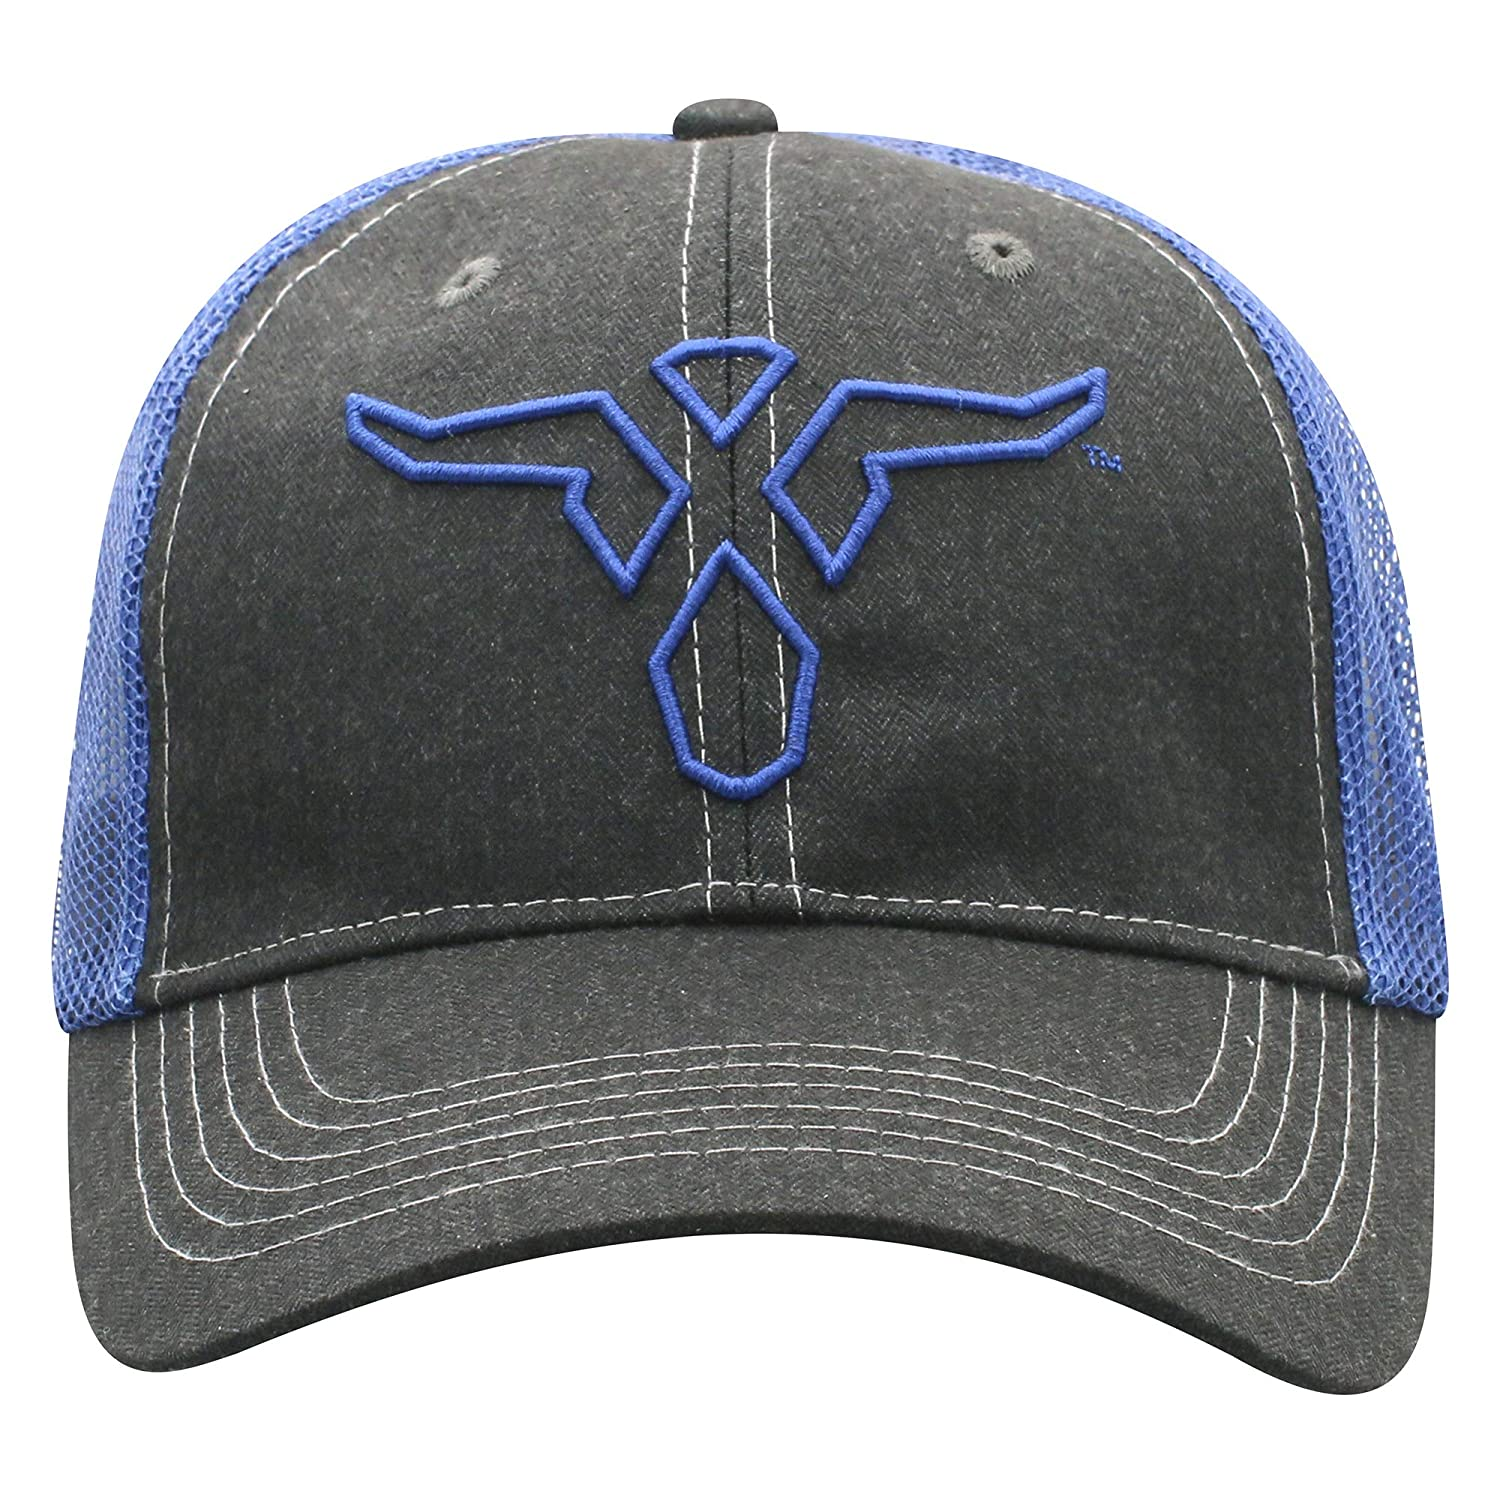 e43f059c5 Wrangler Men's True Blue Bull Mesh Back Trucker Cap at Amazon Men's ...